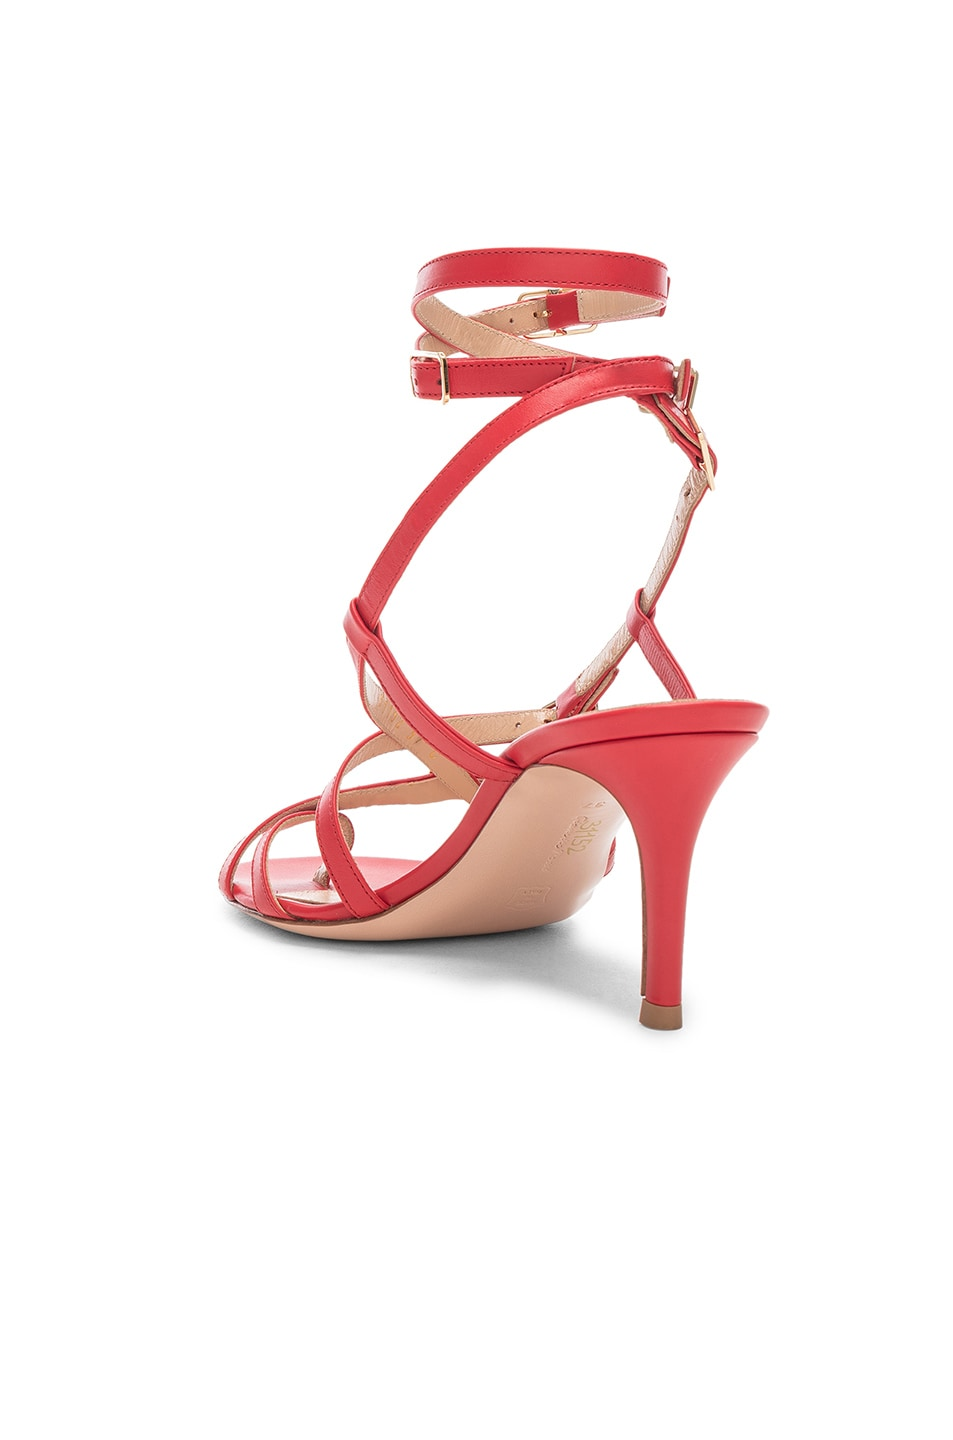 Image 3 of Gianvito Rossi Cory Buckle Strappy Heel in Tabasco Red